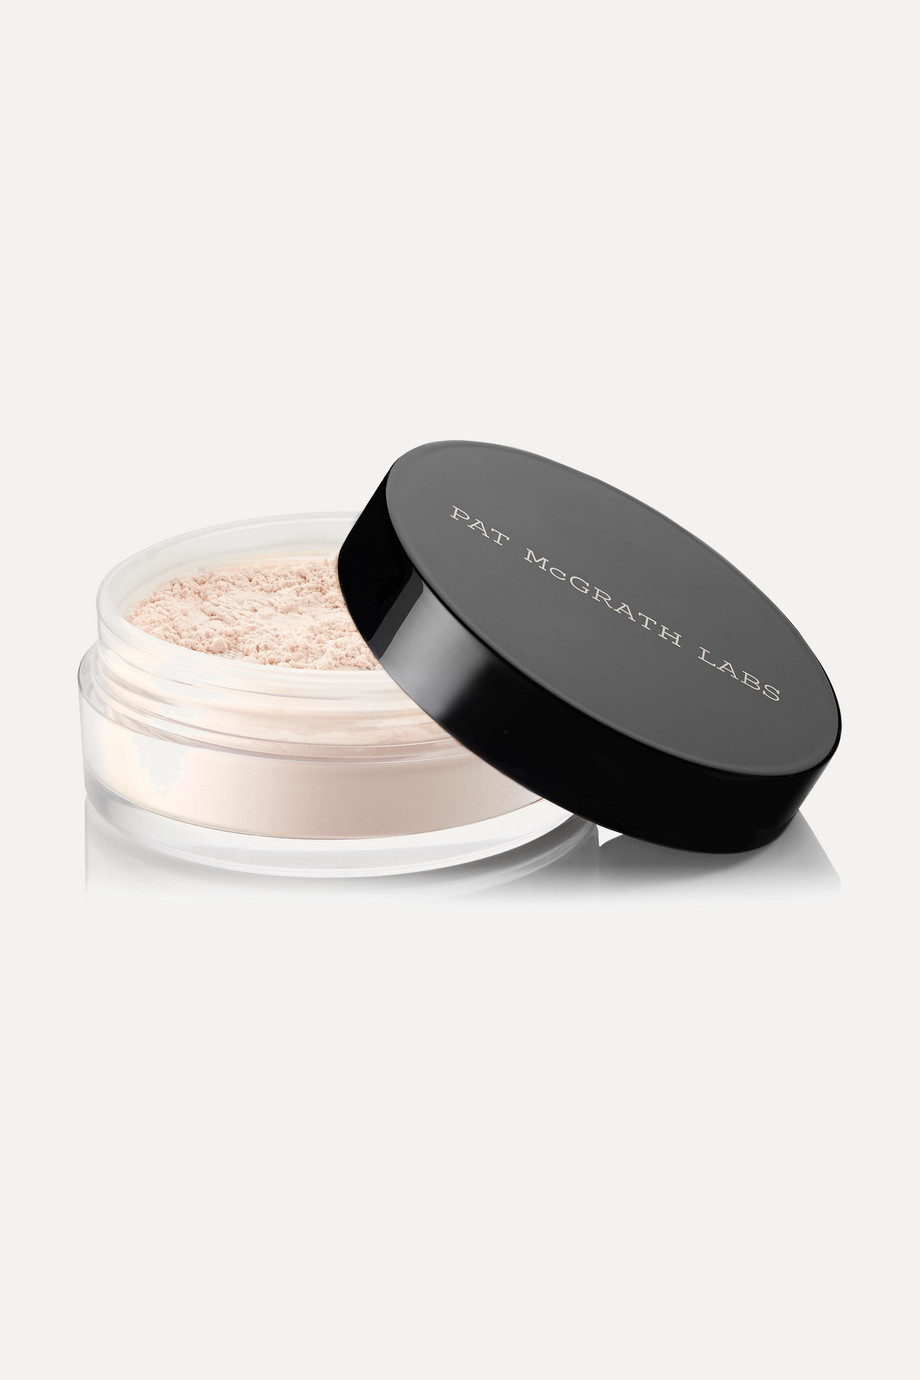 Pat McGrath Labs Skin Fetish: Sublime Perfection Setting Powder - Light 1